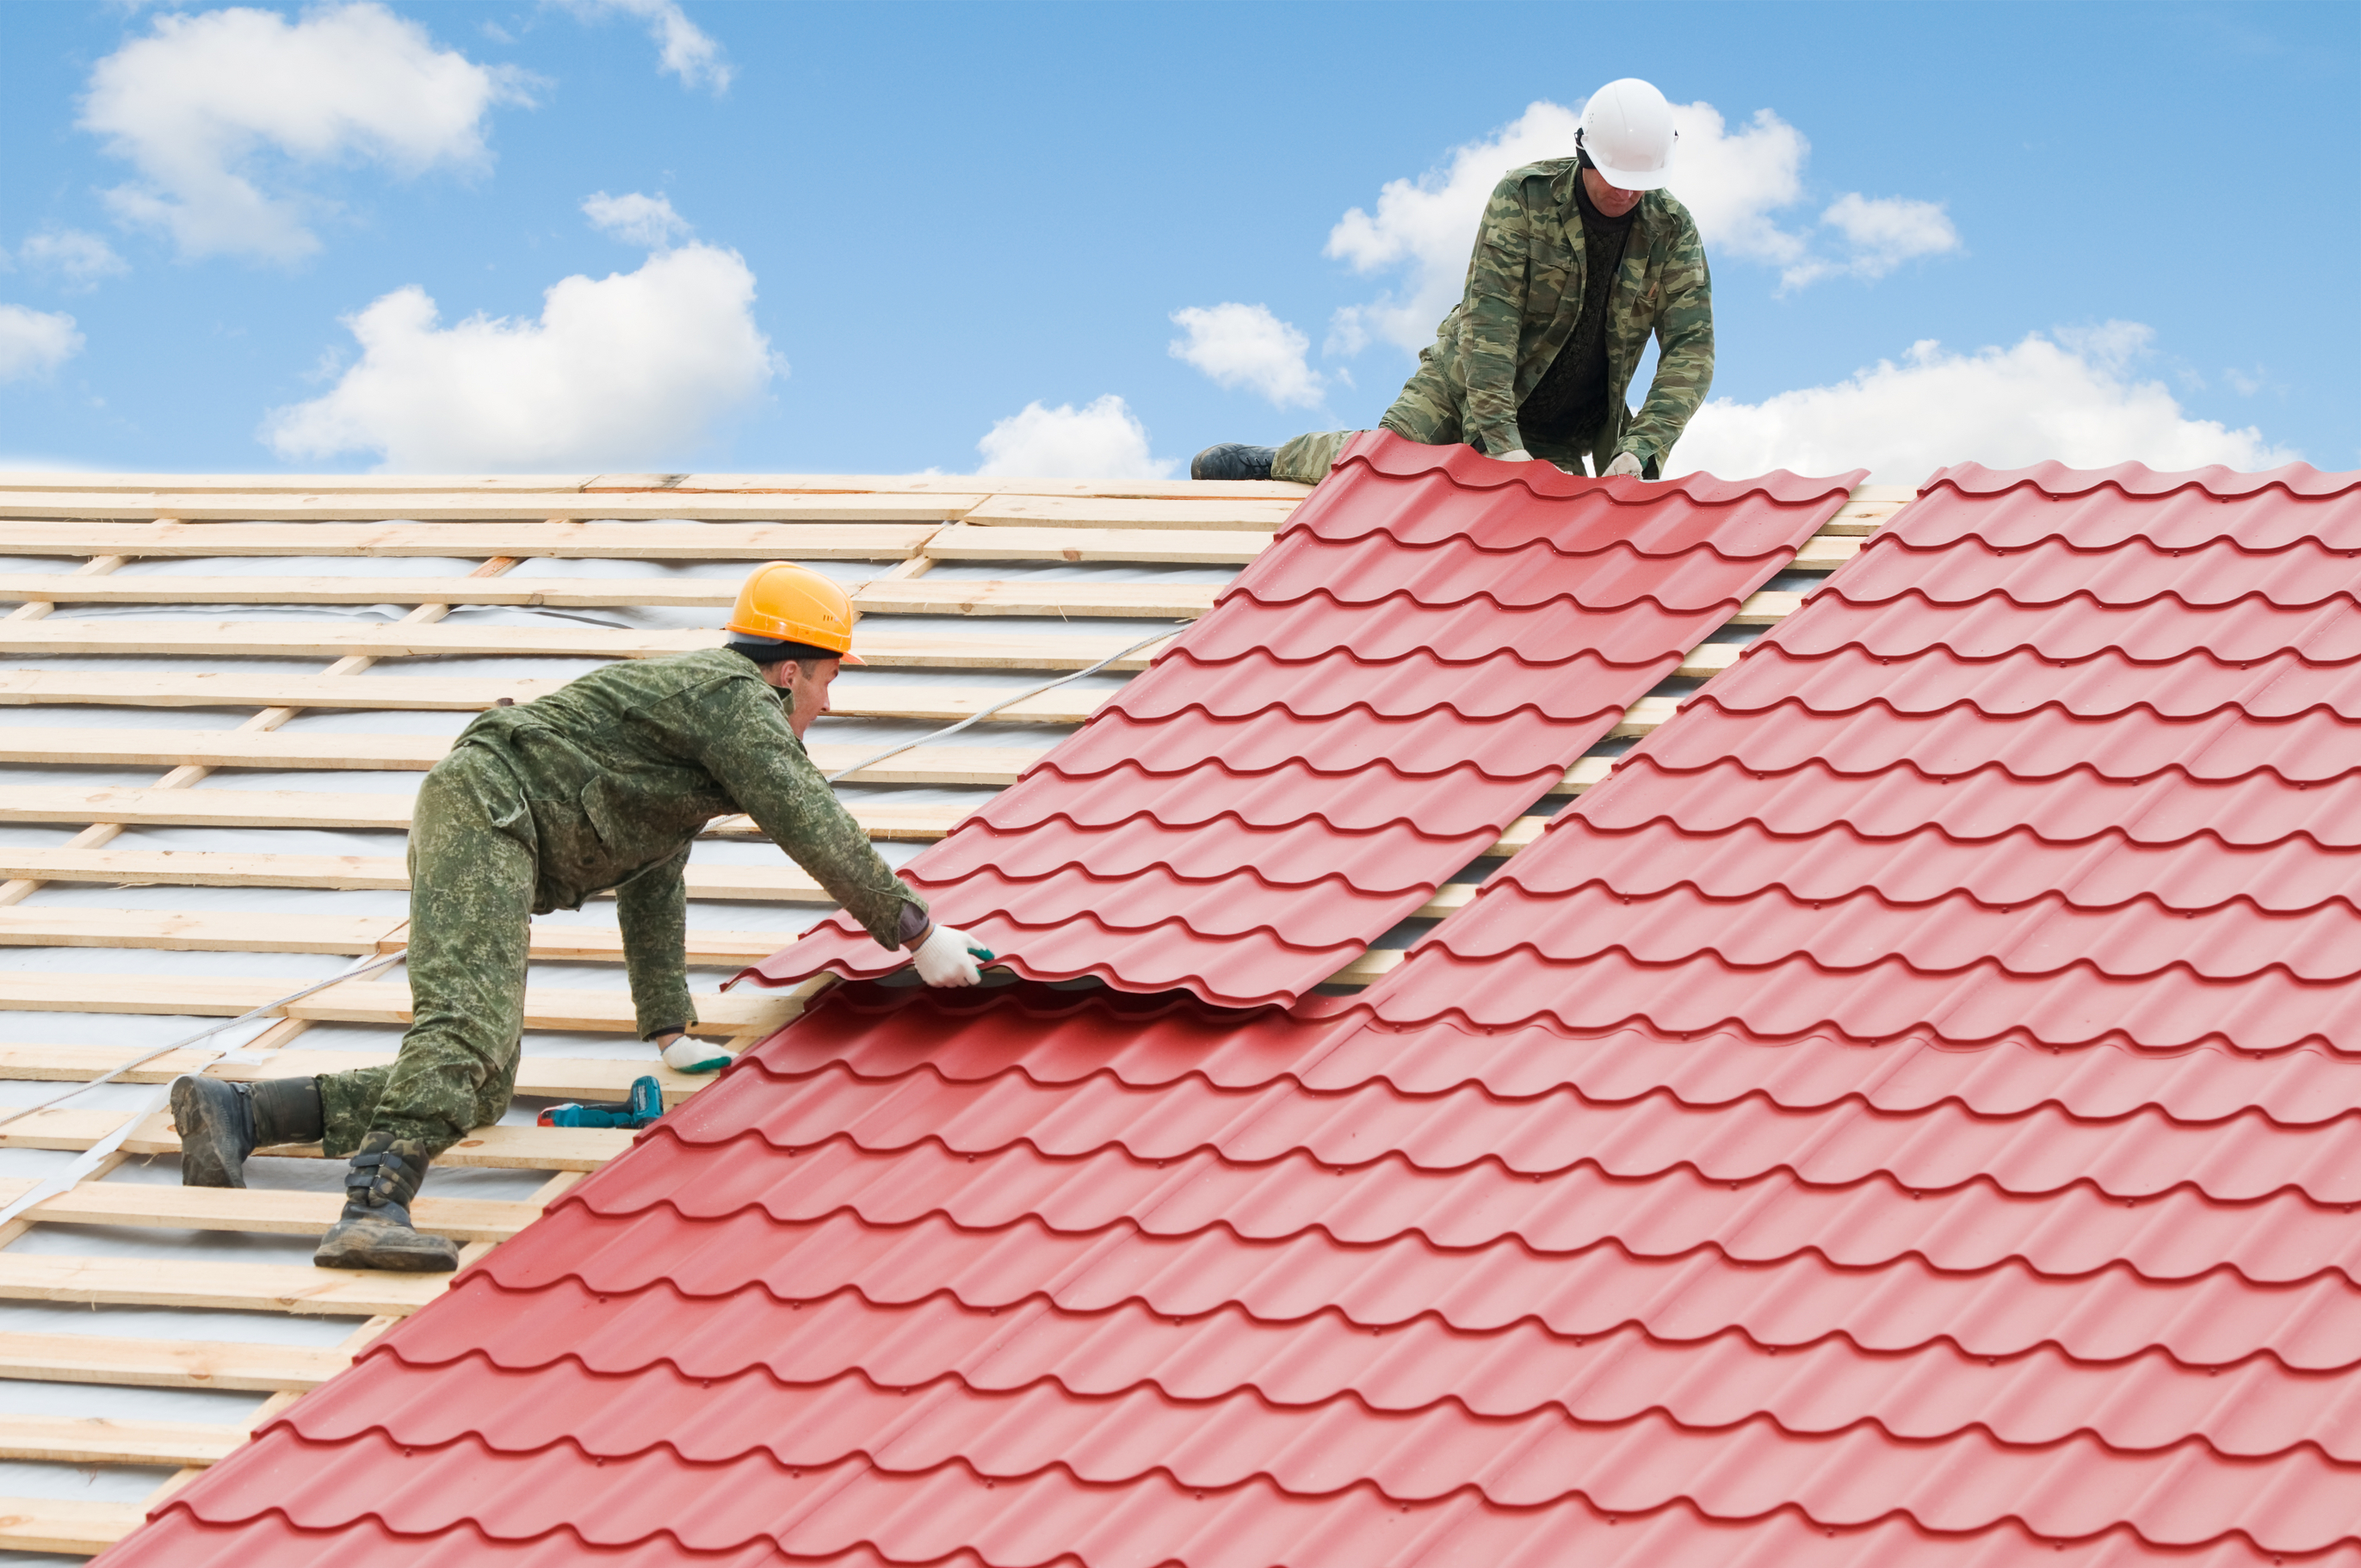 Apply Reflective Roof Paint to Keep Your Building Cool